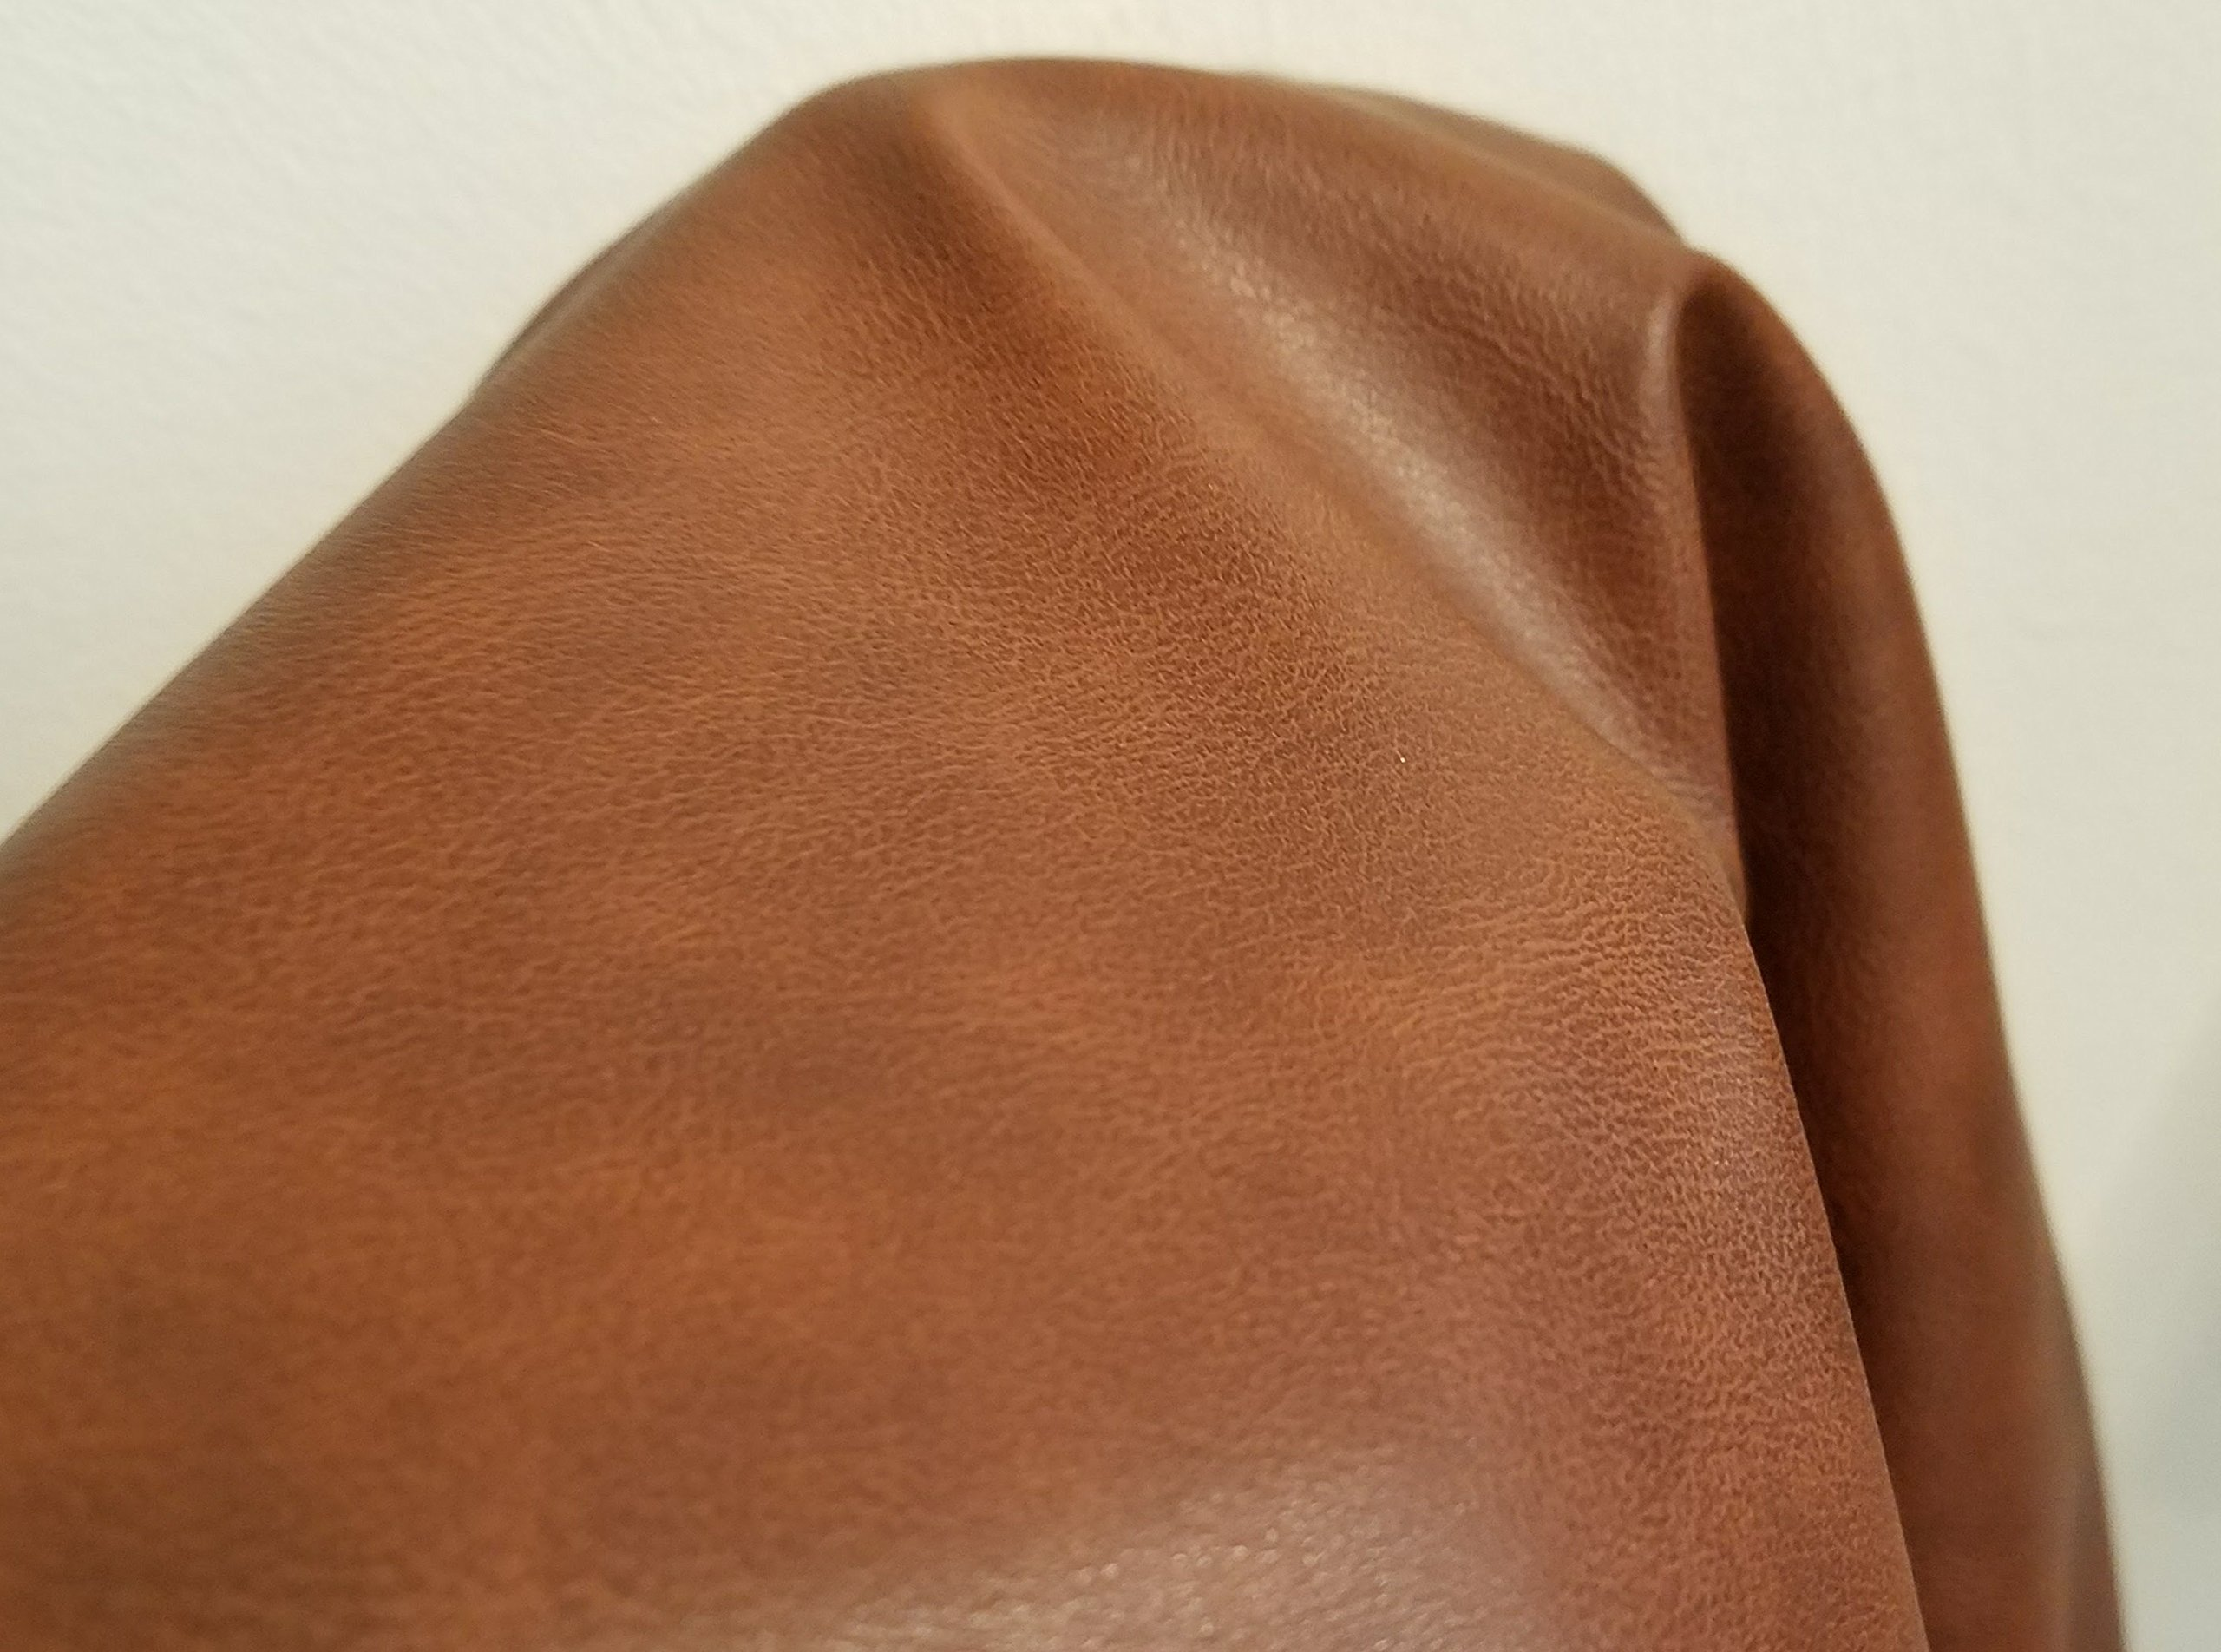 Mid Brown Soft Faux Vegan PU Leather by The Yard Synthetic Pleather 0.9 mm Nappa Yards (108 inch Wide x 52 inch) Soft Smooth Vinyl Upholstery (Mid Brown, 5 Yard (180''x54''))